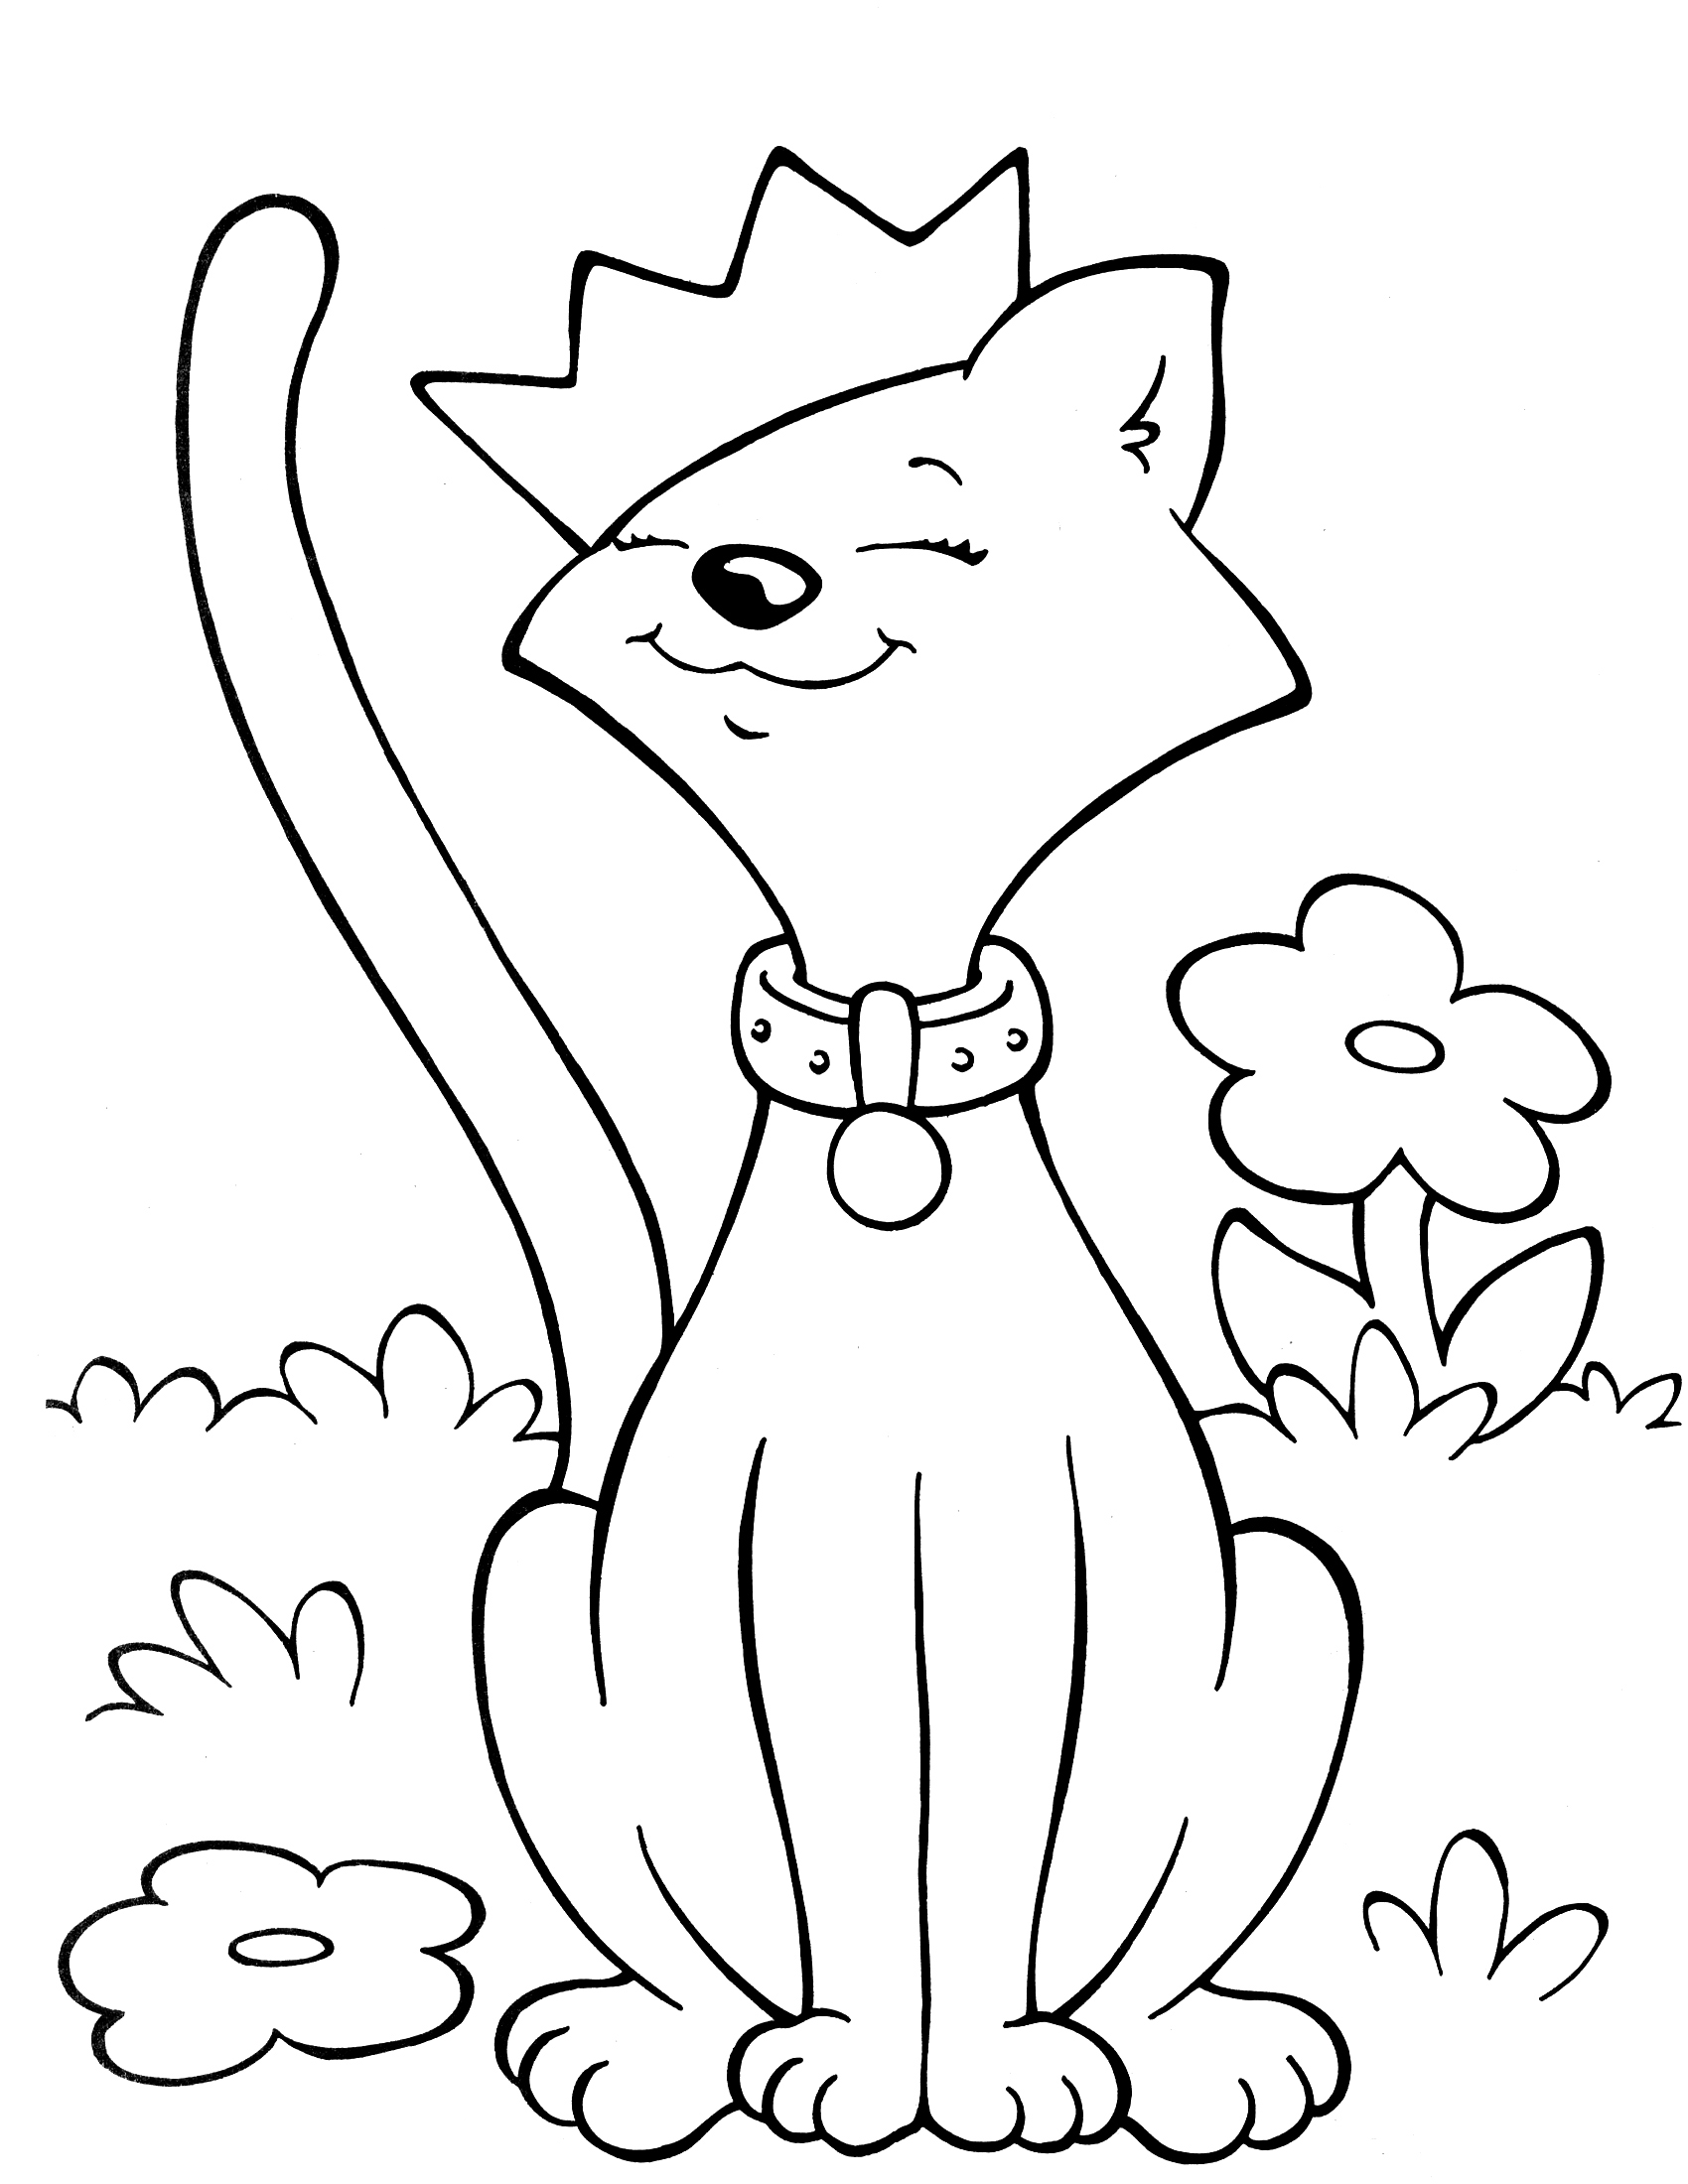 crayola coloring pages 01